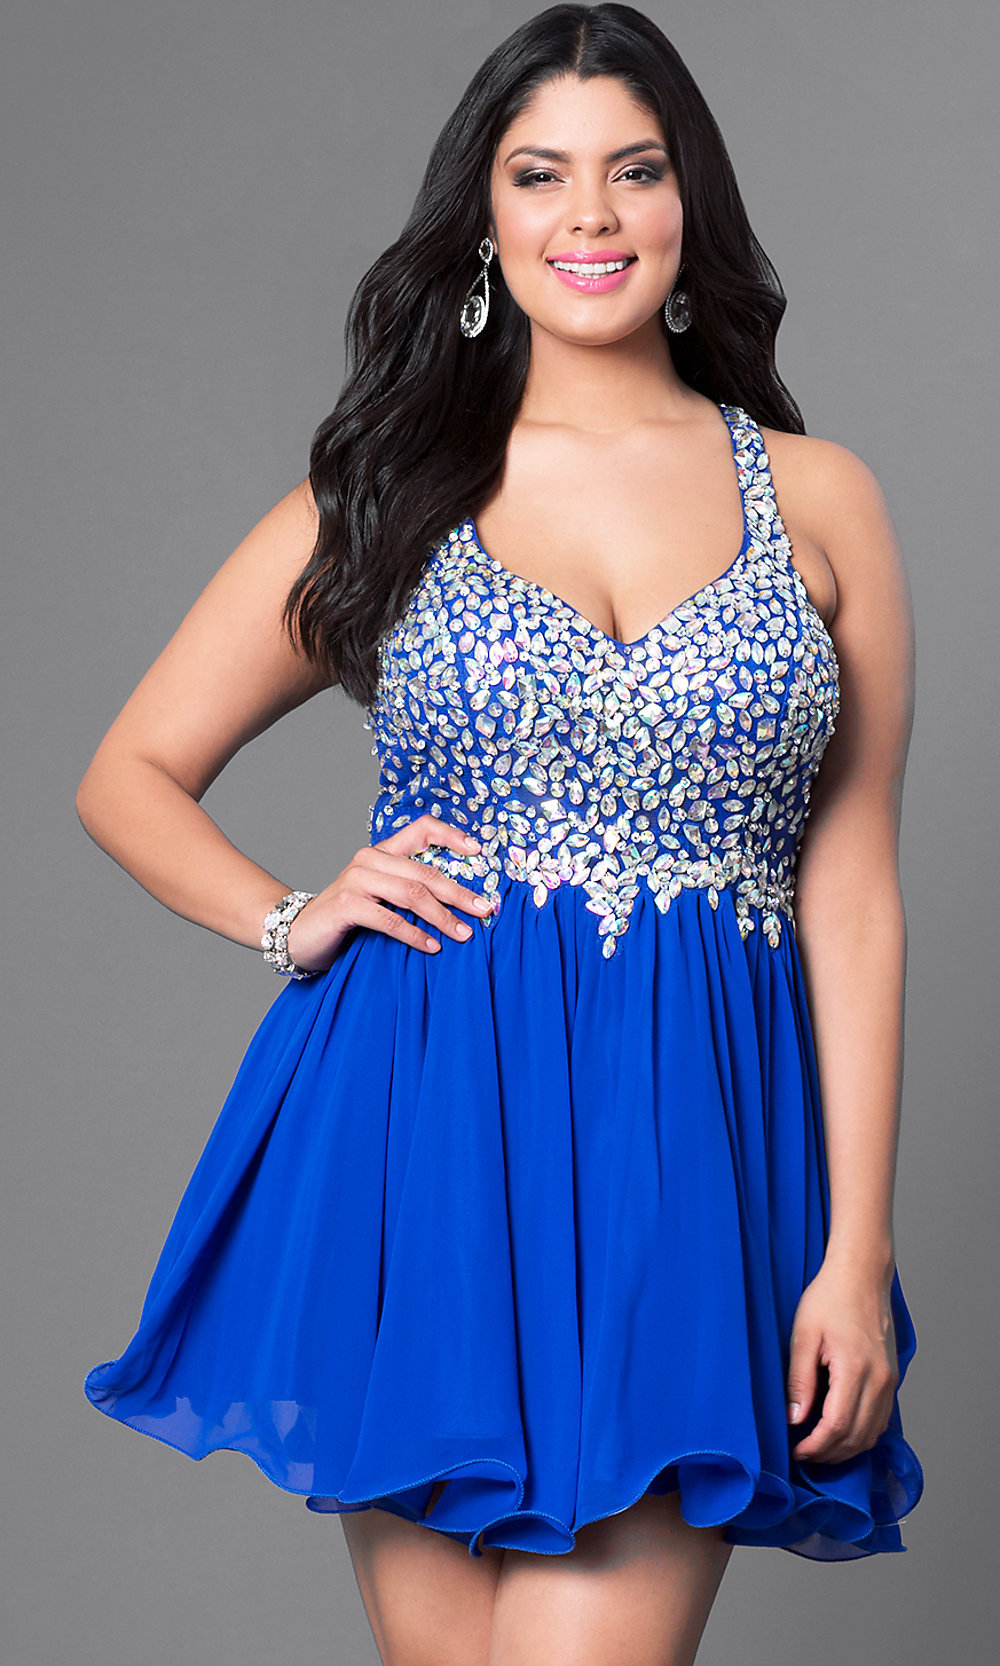 What Color Shoes To Wear With Royal Blue Lace Dress